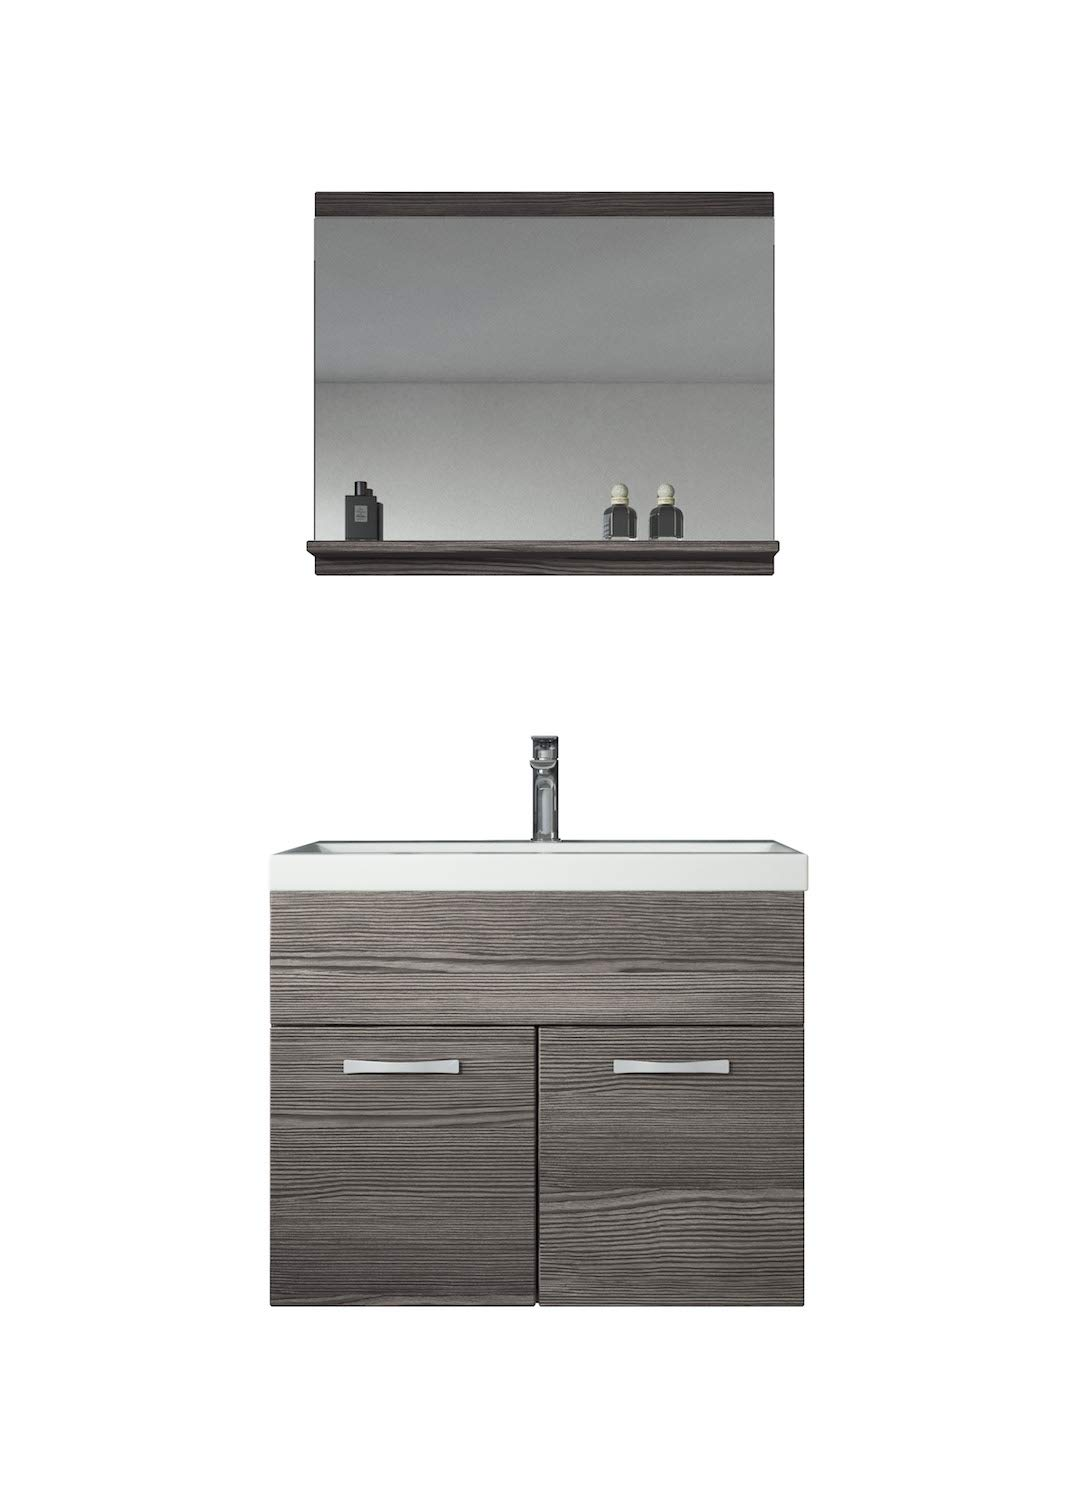 Bathroom furniture set Montreal 02 60cm basin Bodega - Storage cabinet vanity unit sink furniture Badplaats